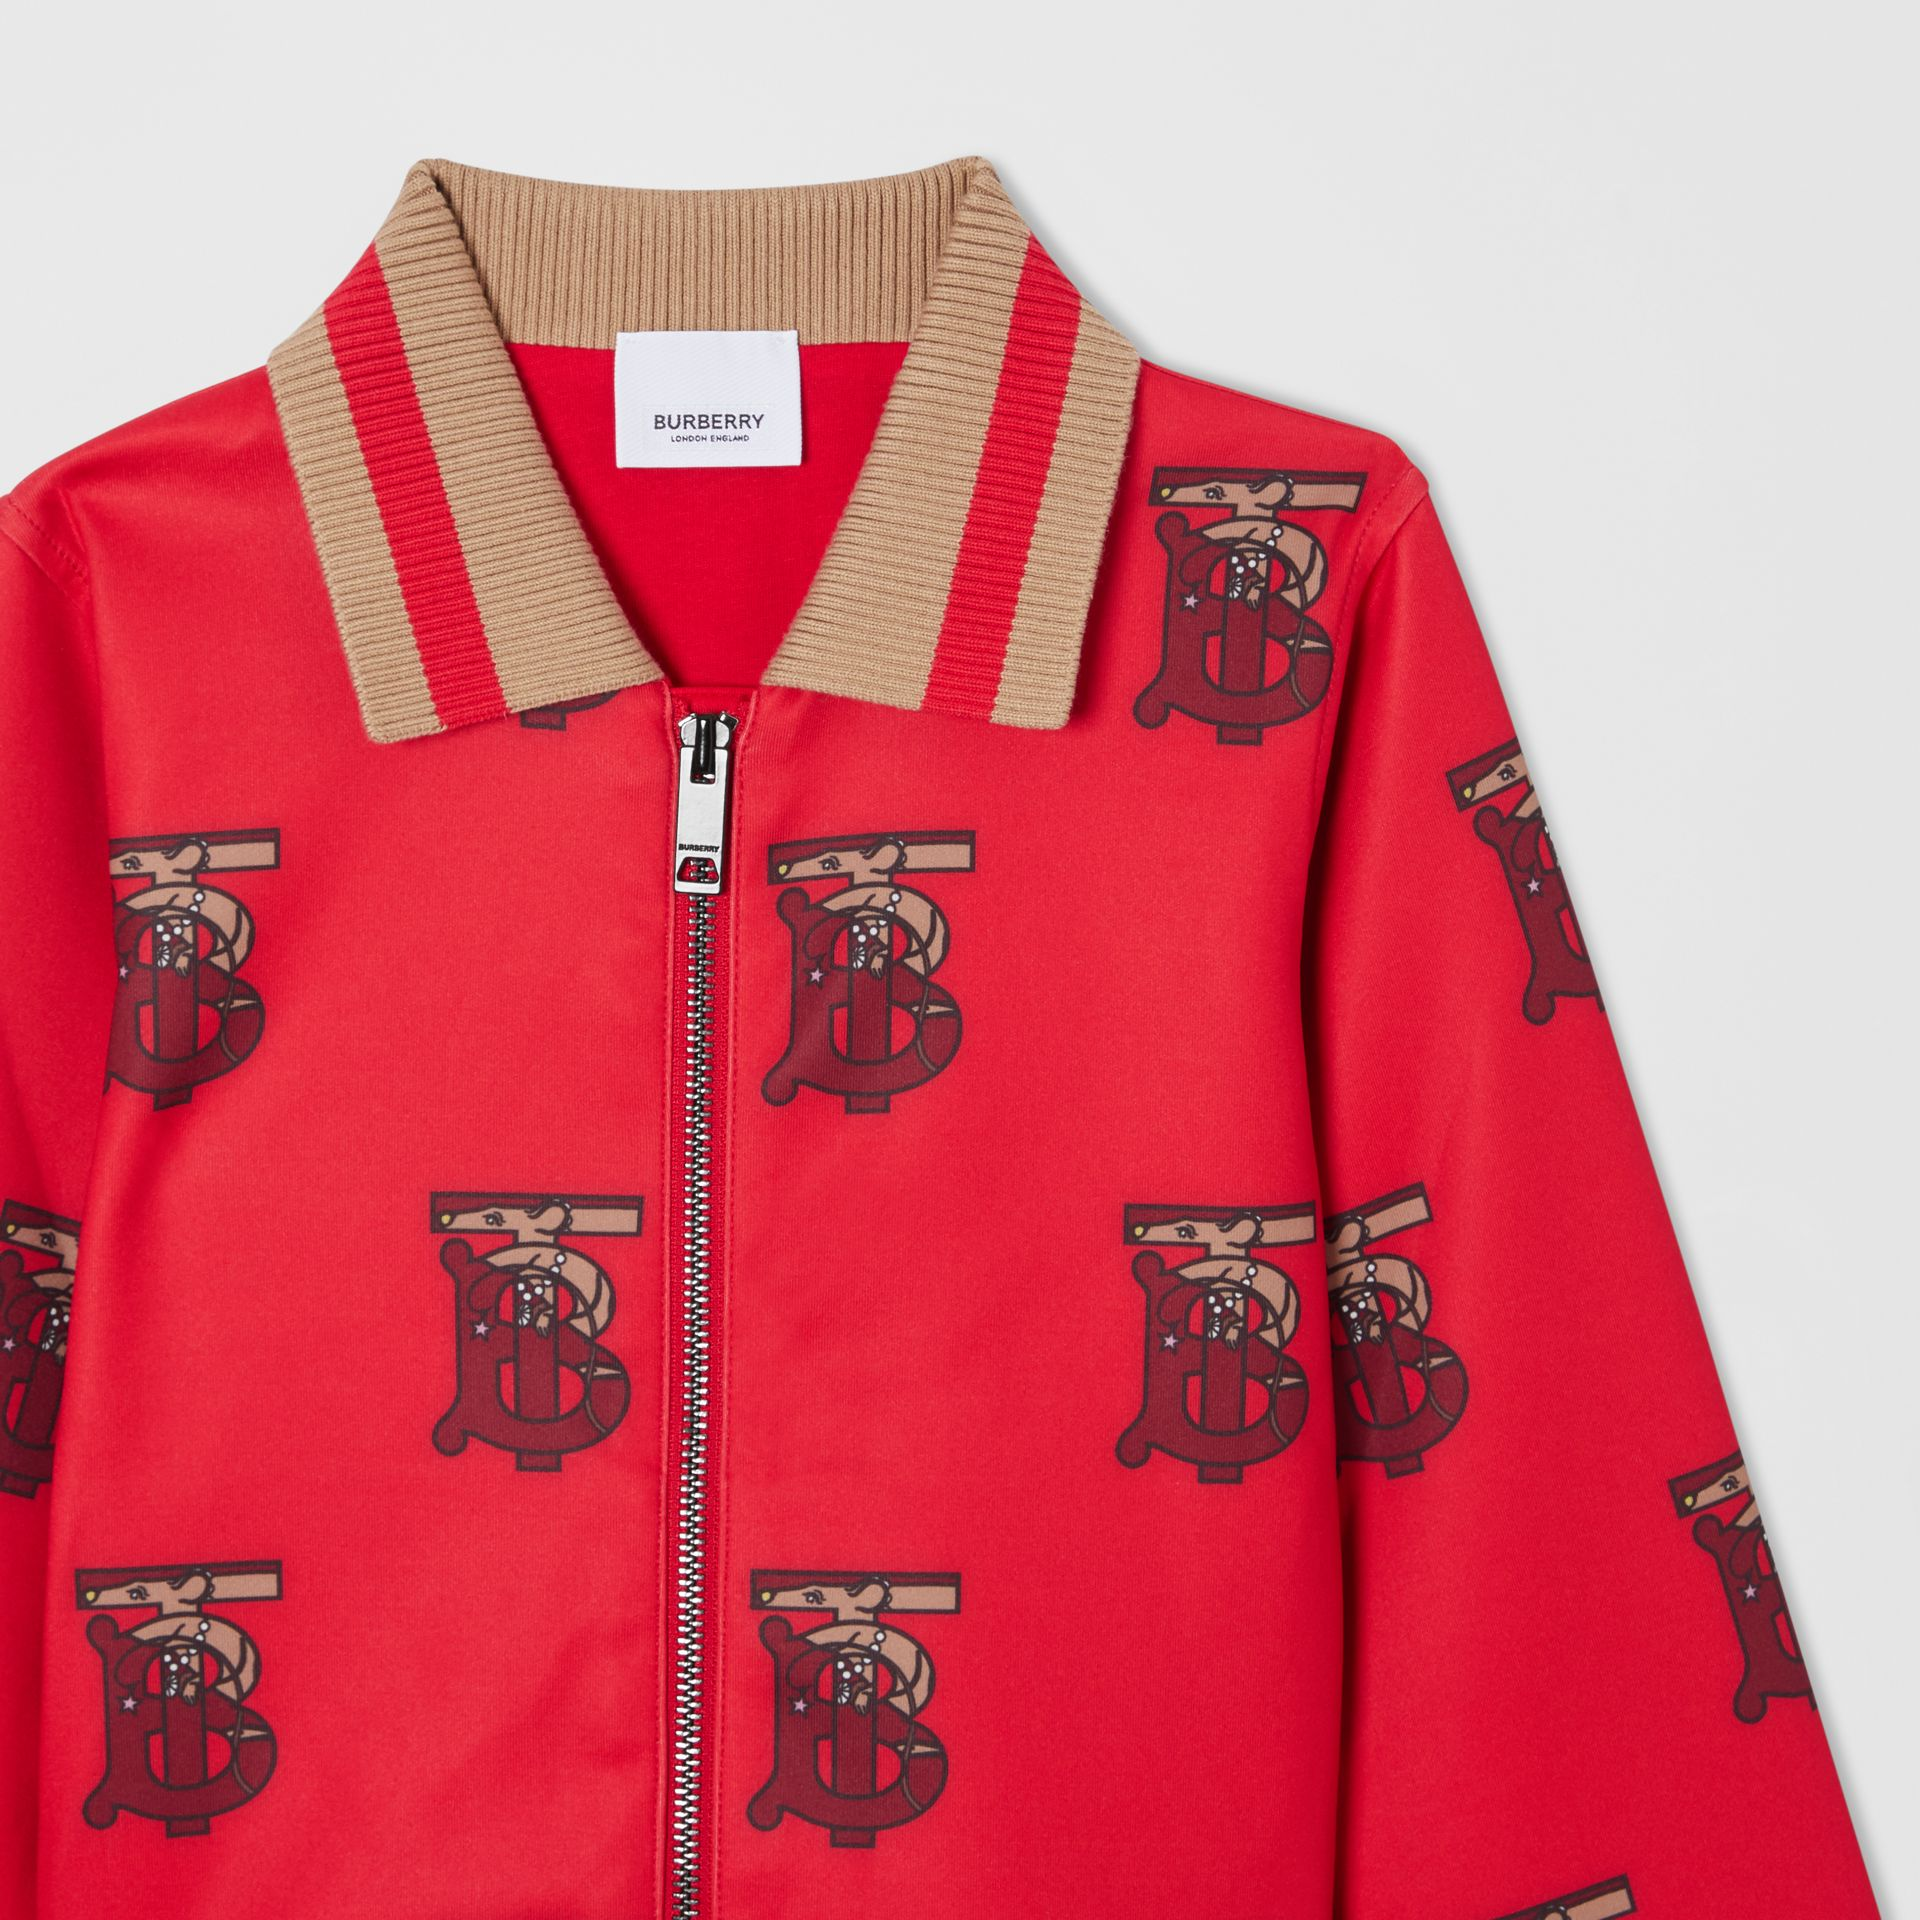 Monogram Motif Neoprene Track Top in Bright Red | Burberry - gallery image 5